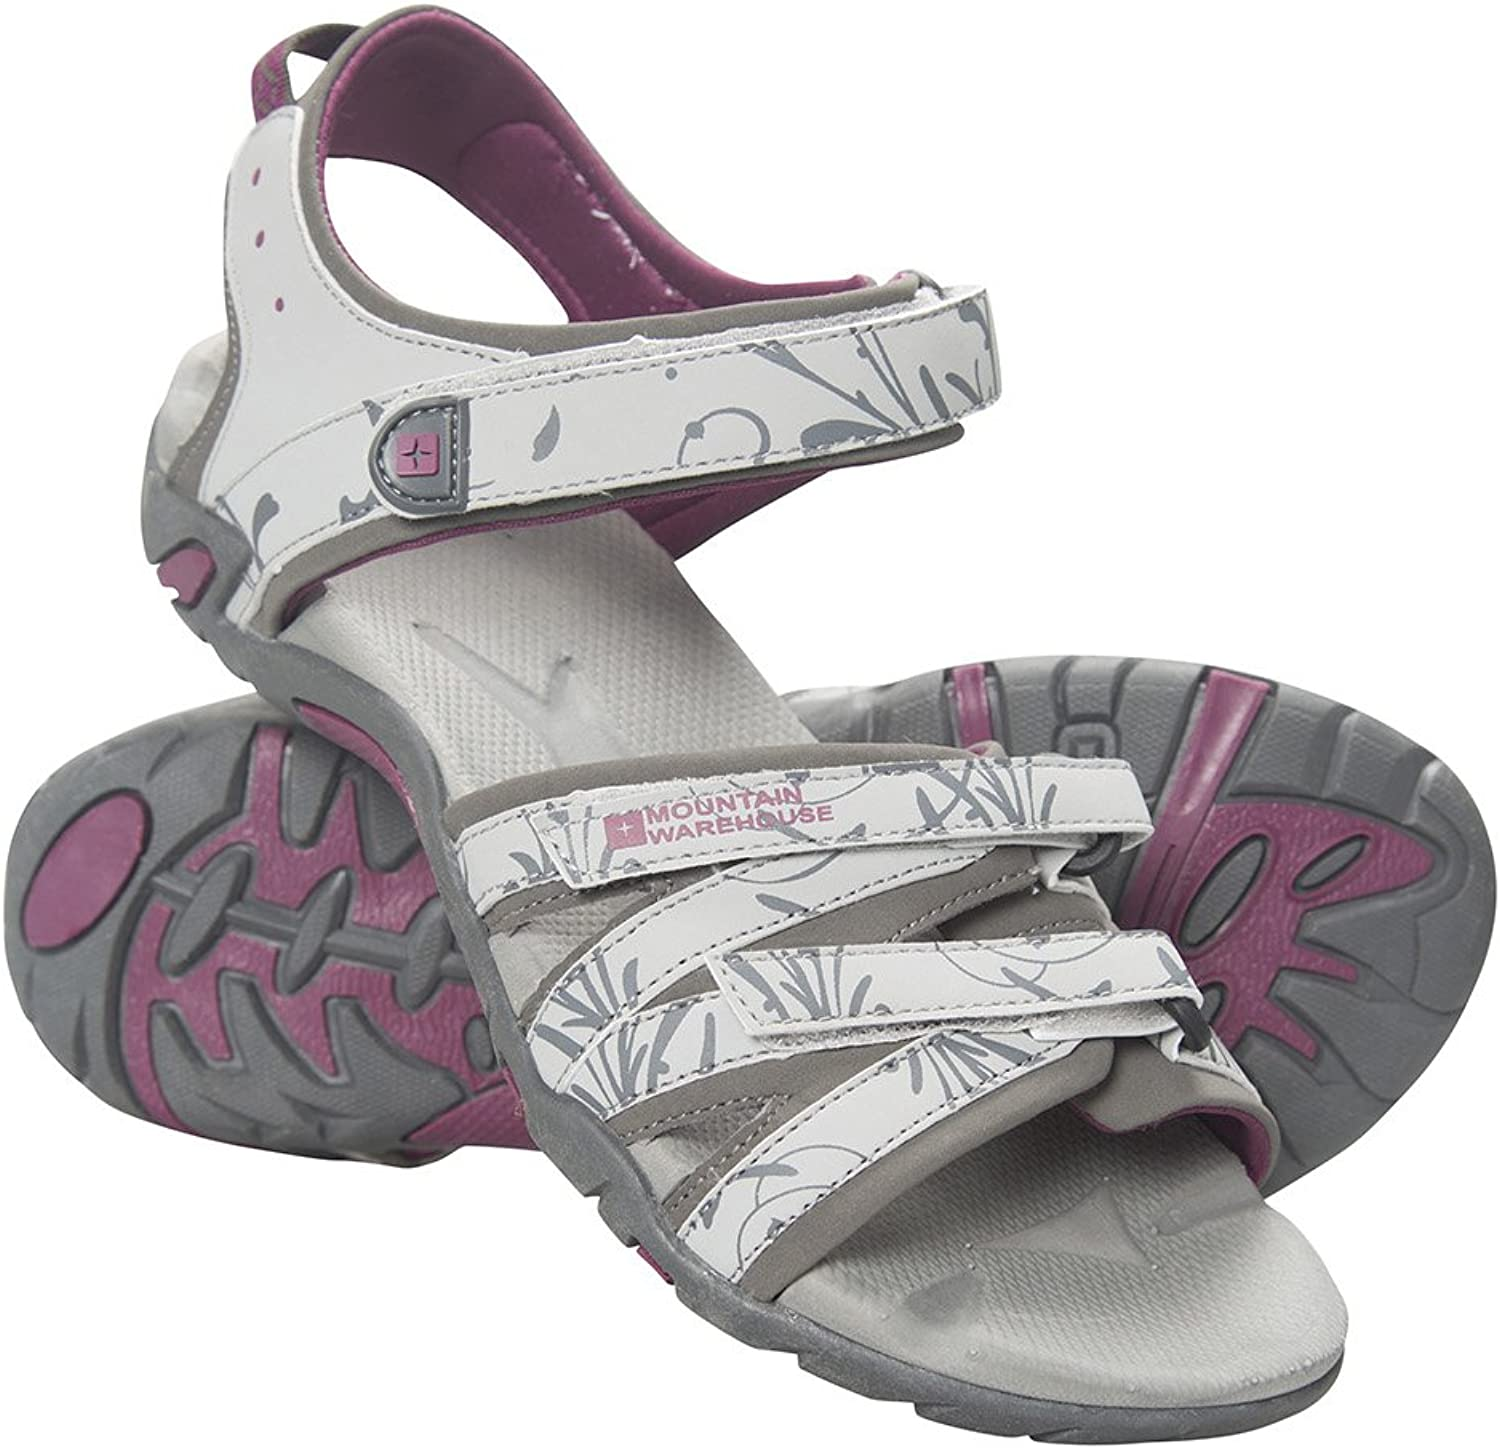 Mountain Warehouse Santorini Womens Sandals - Ladies Summer shoes